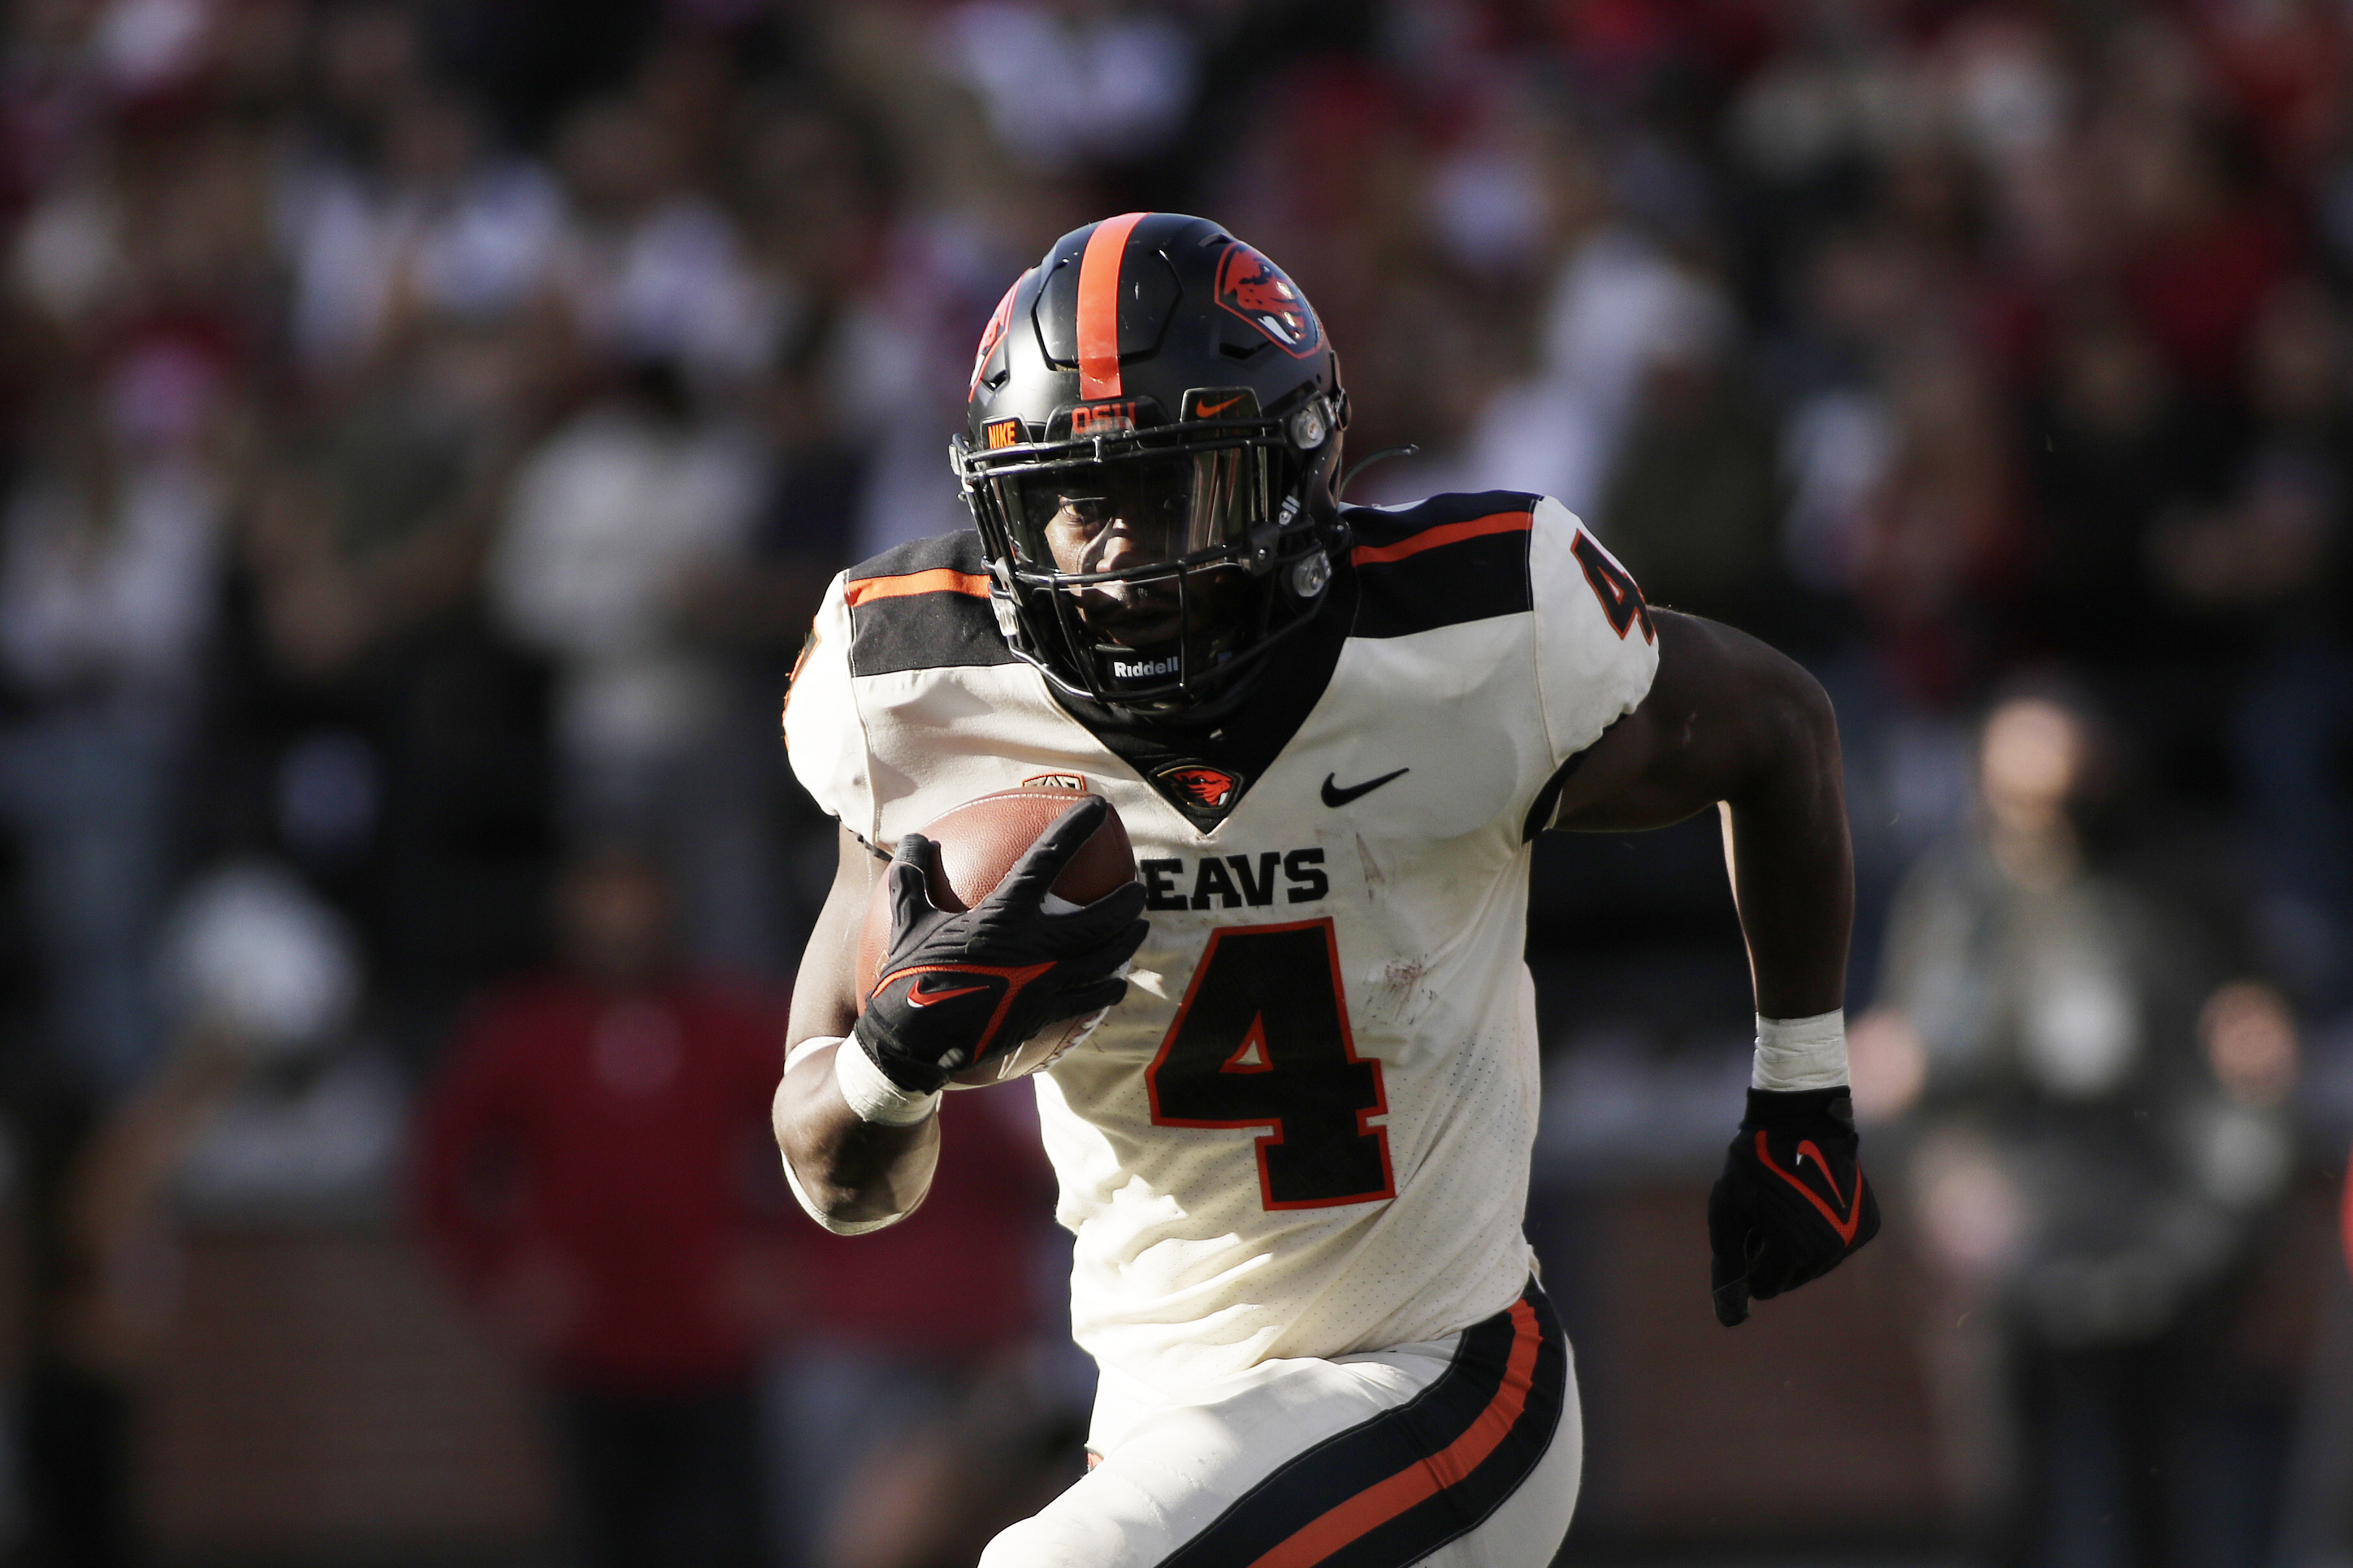 Oregon State running back B.J. Baylor carries the ball during against Washington State on Oct. 9, 2021, in Pullman, Wash.